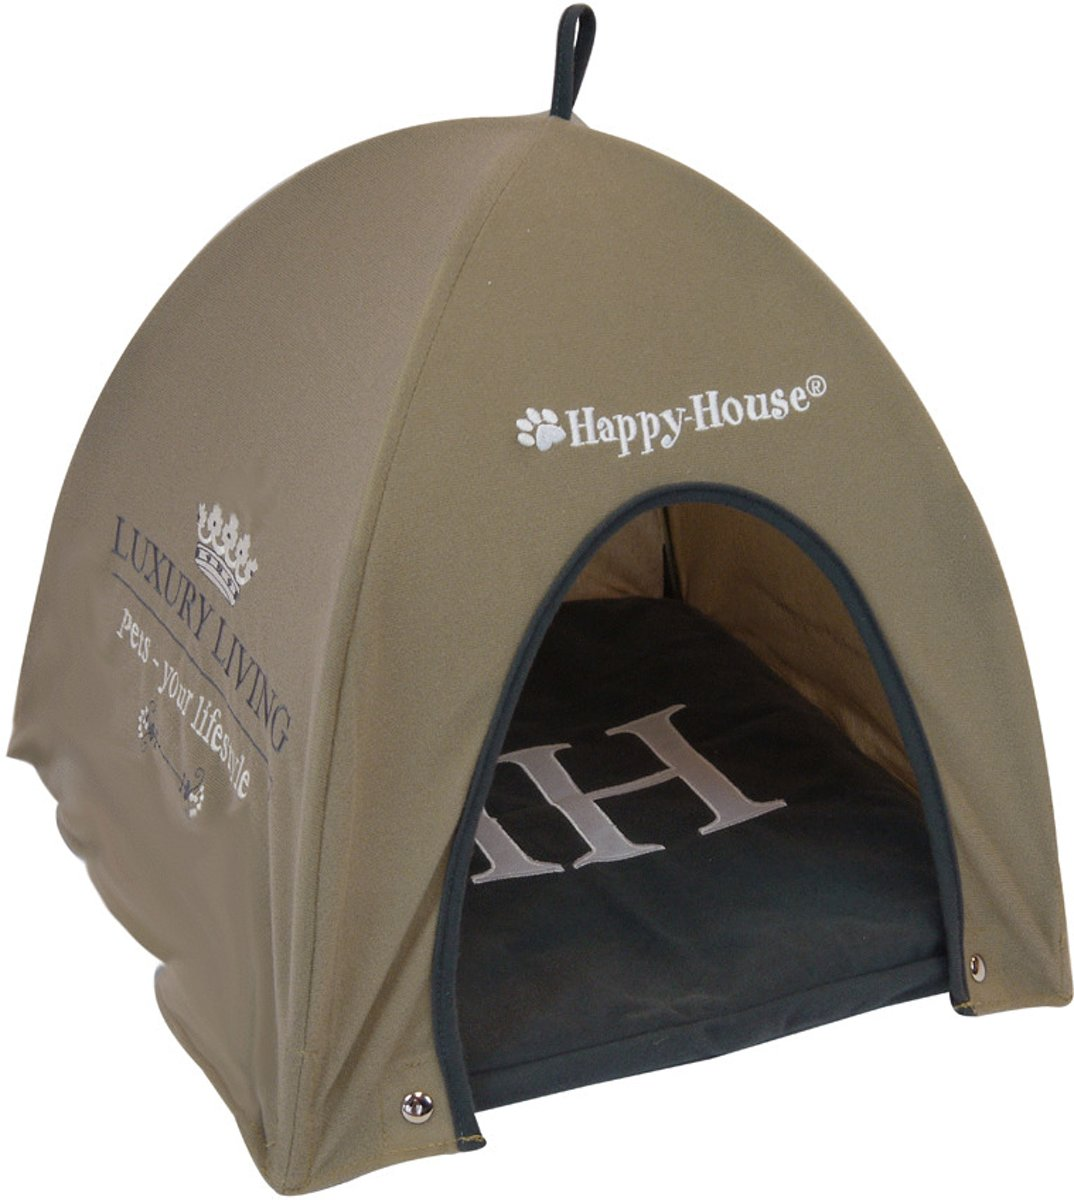 Happy House Luxury Living Tent - Taupe